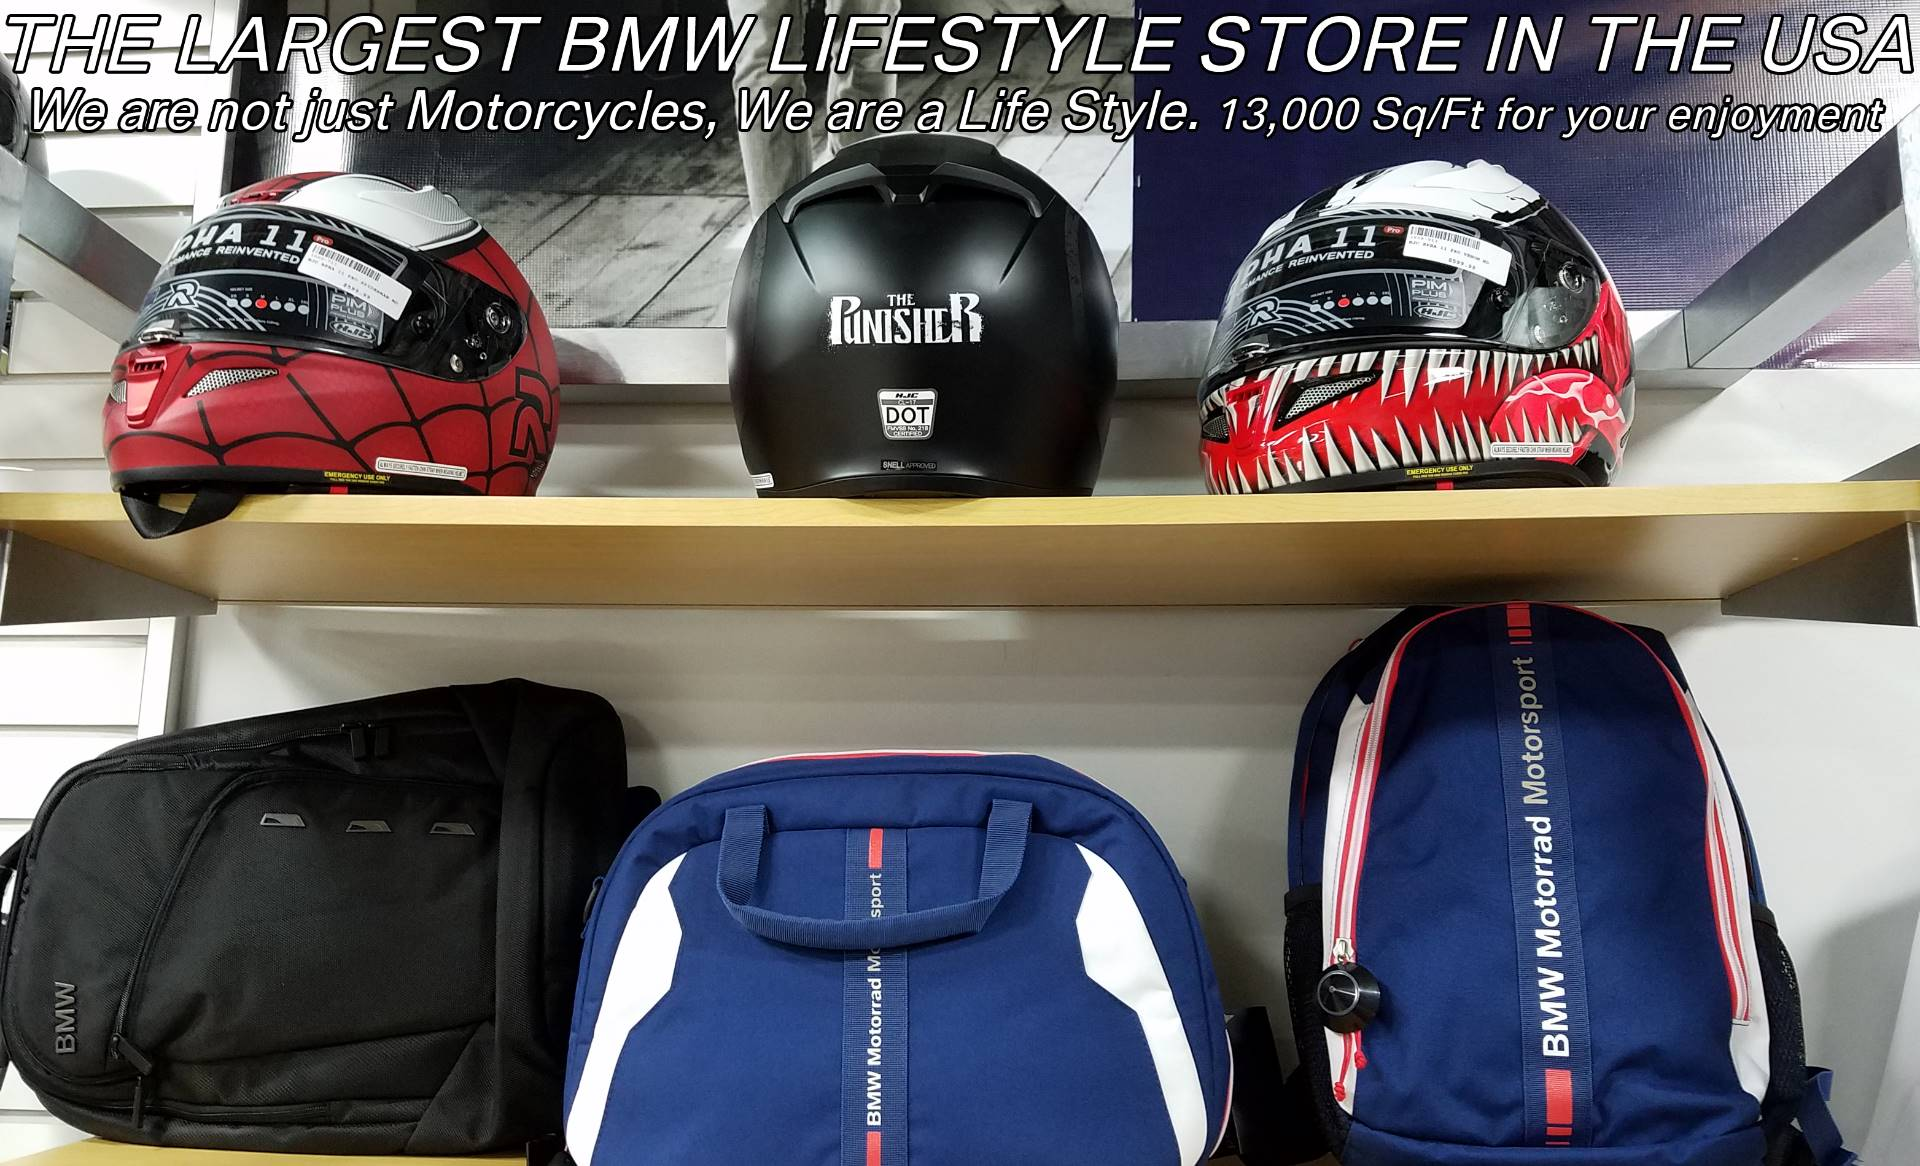 BMW Motorcycles of Miami, Motorcycles of Miami, Motorcycles Miami, New Motorcycles, Used Motorcycles, pre-owned. #BMWMotorcyclesOfMiami #MotorcyclesOfMiami - Photo 31